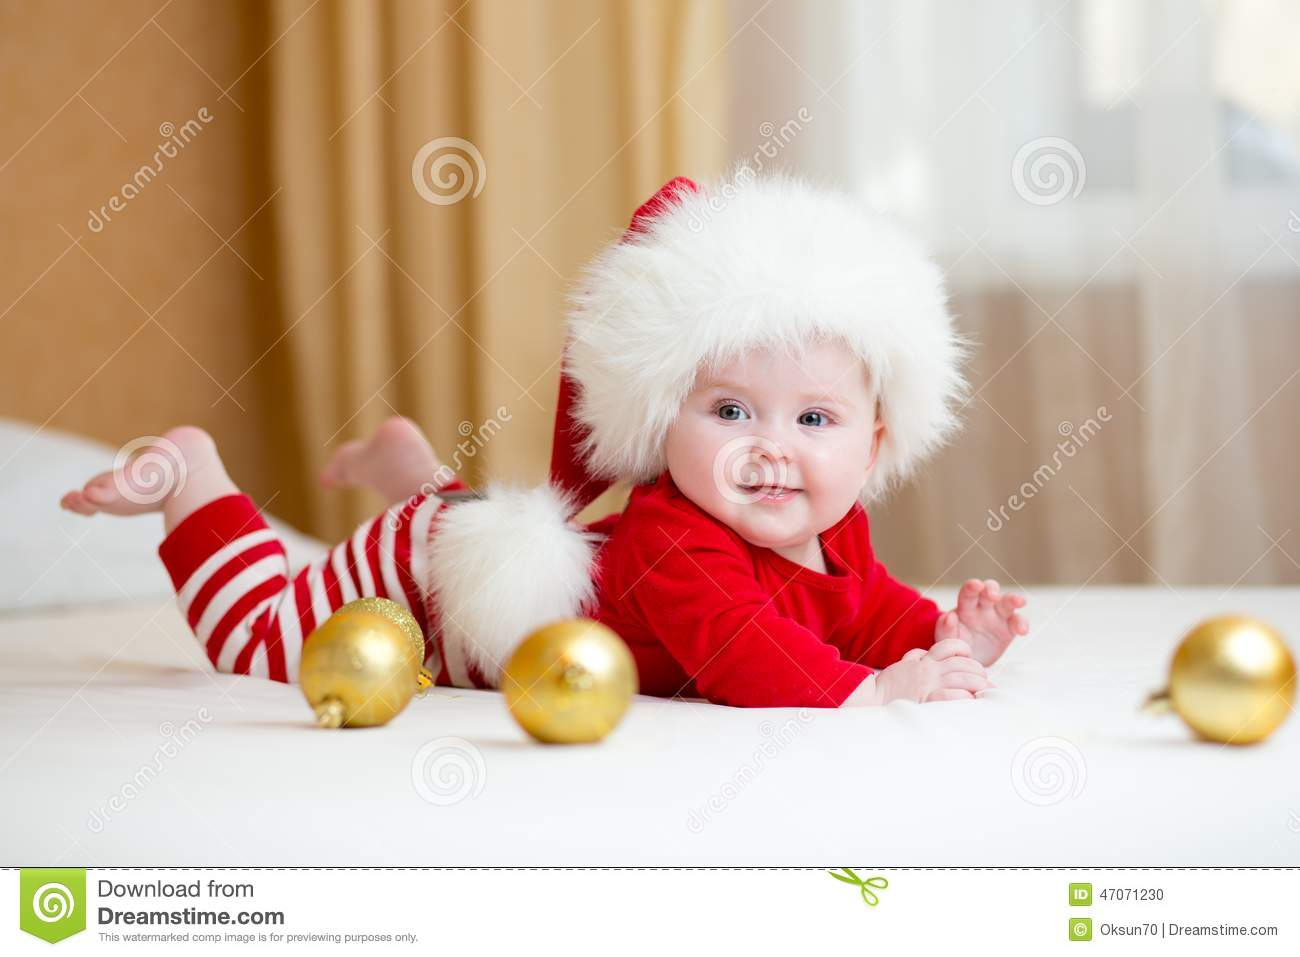 9bd669f03879 Cute Baby Girl Weared Christmas Clothes Stock Photo - Image of baby ...